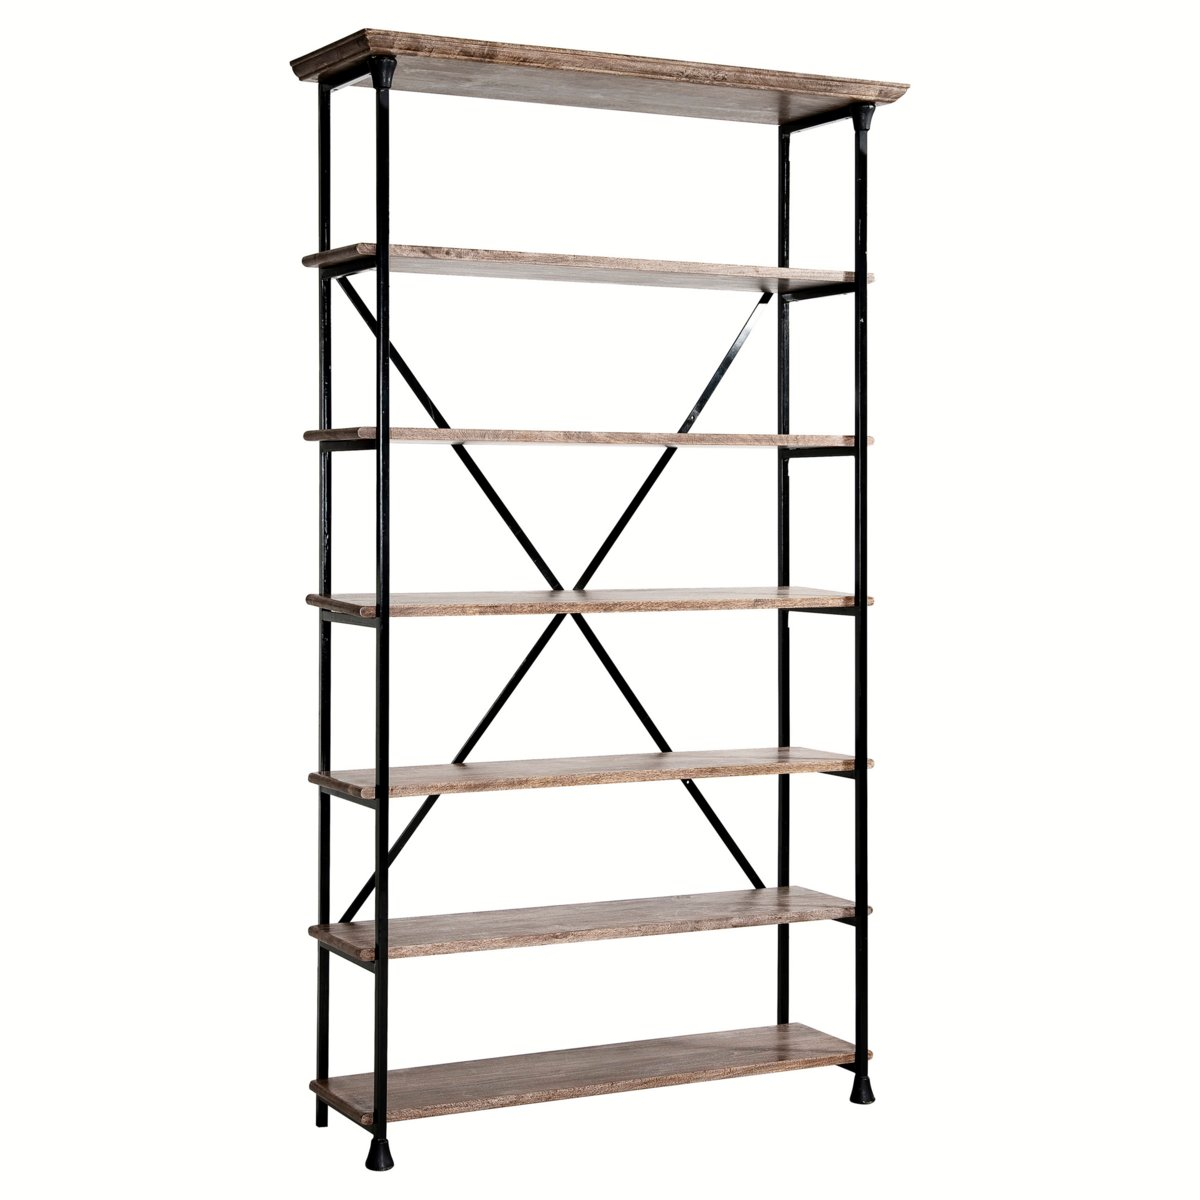 Biblioth que am pm etag re bois et m tal koncept am pm ventes pas - Etagere pas cher design ...